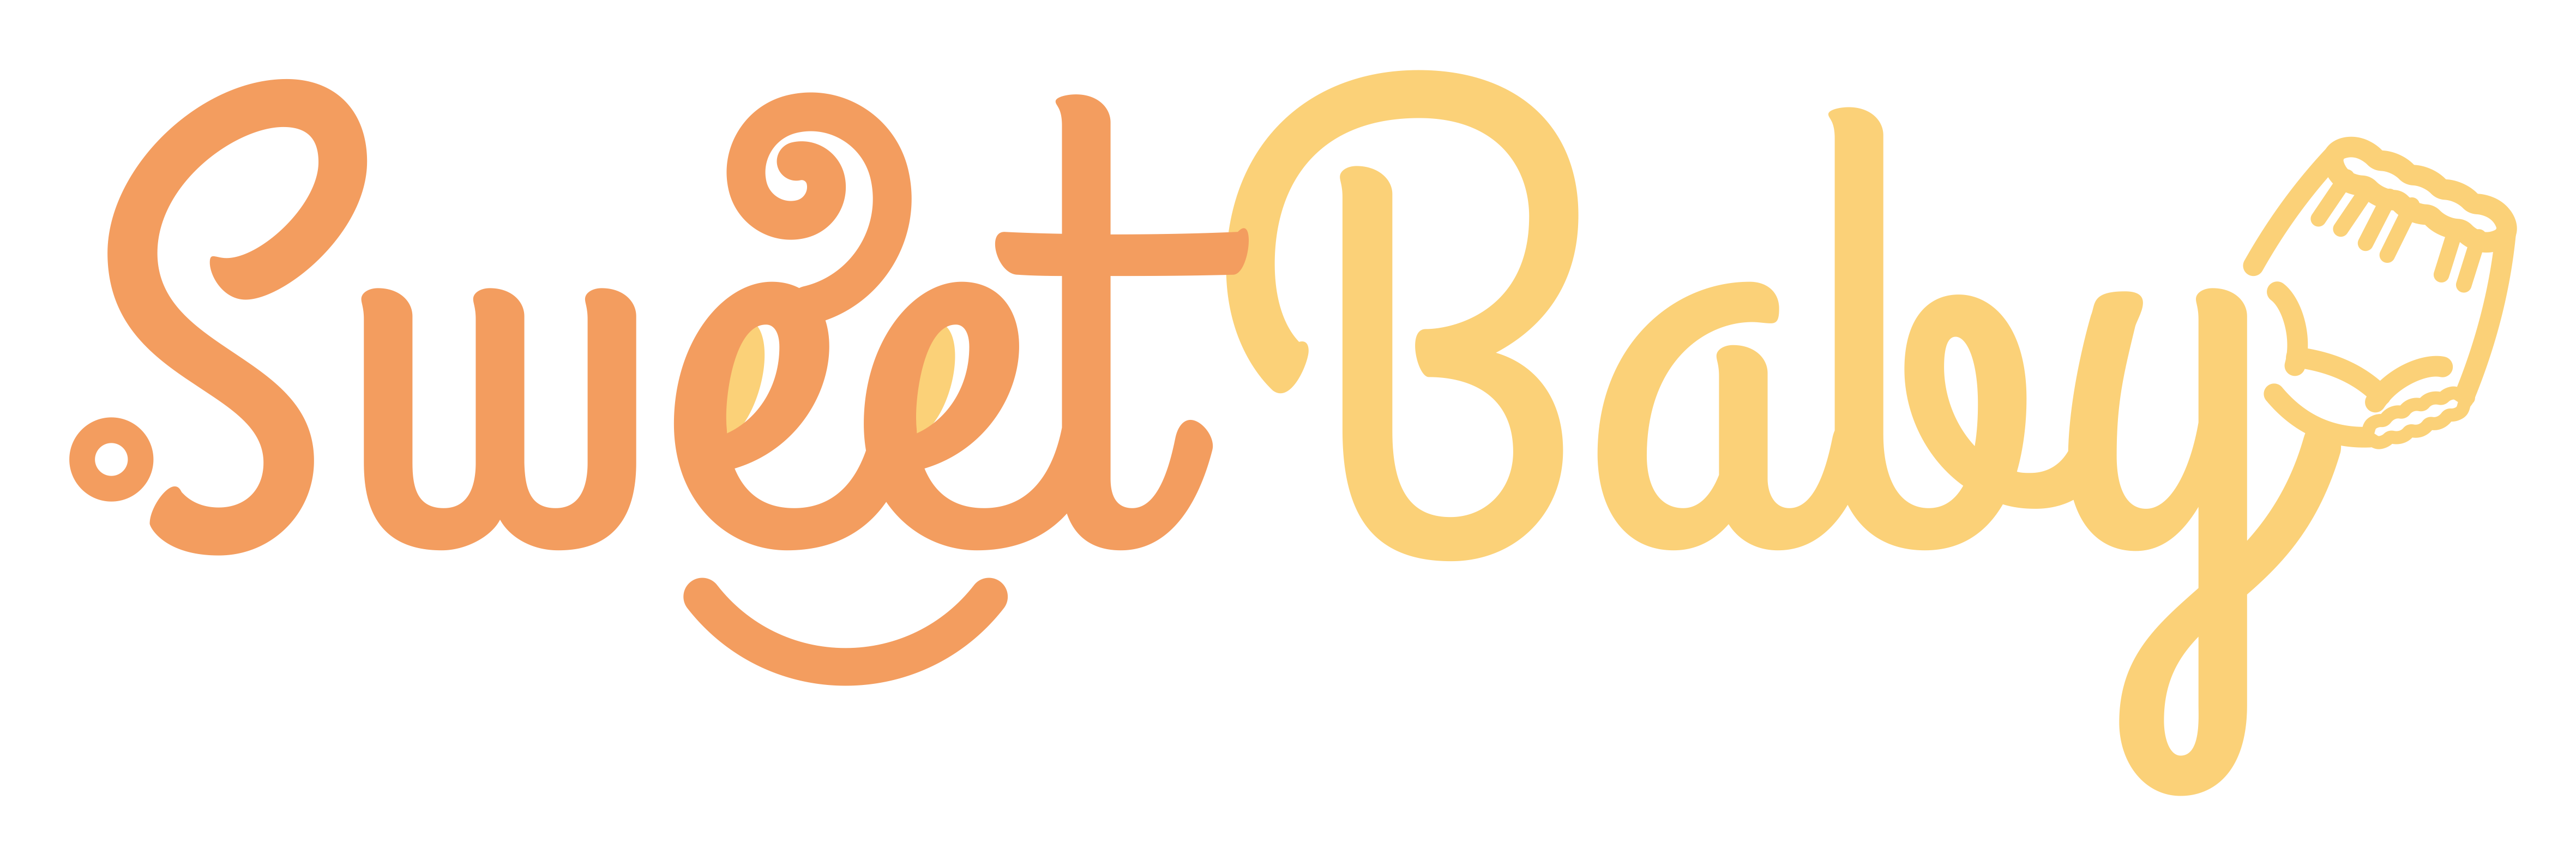 Sweet Baby needs a powerful new logo and a better web page.